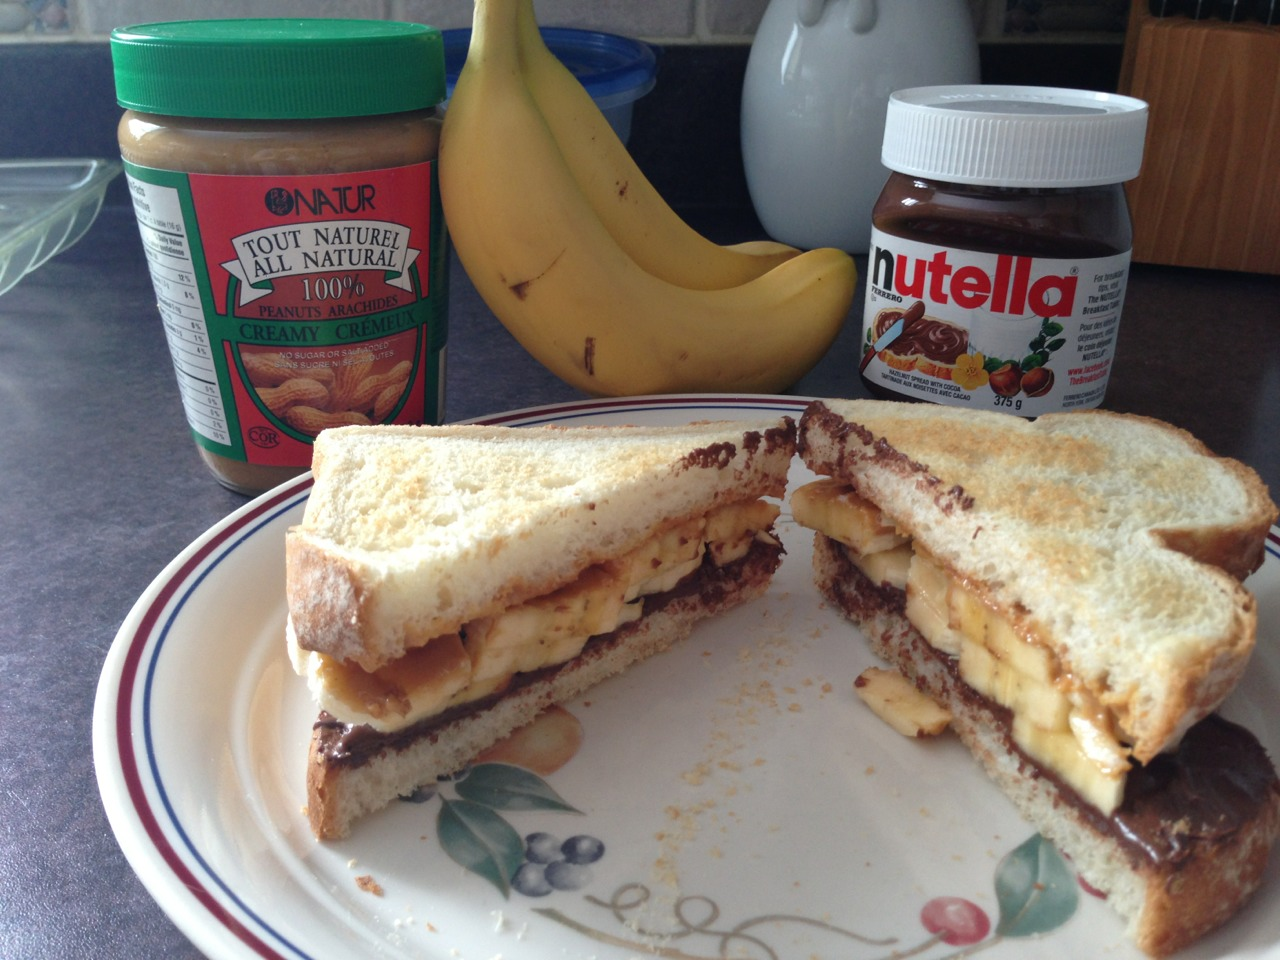 What you'll need: 2 slices of bread Peanut butter Nutella 1 Banana